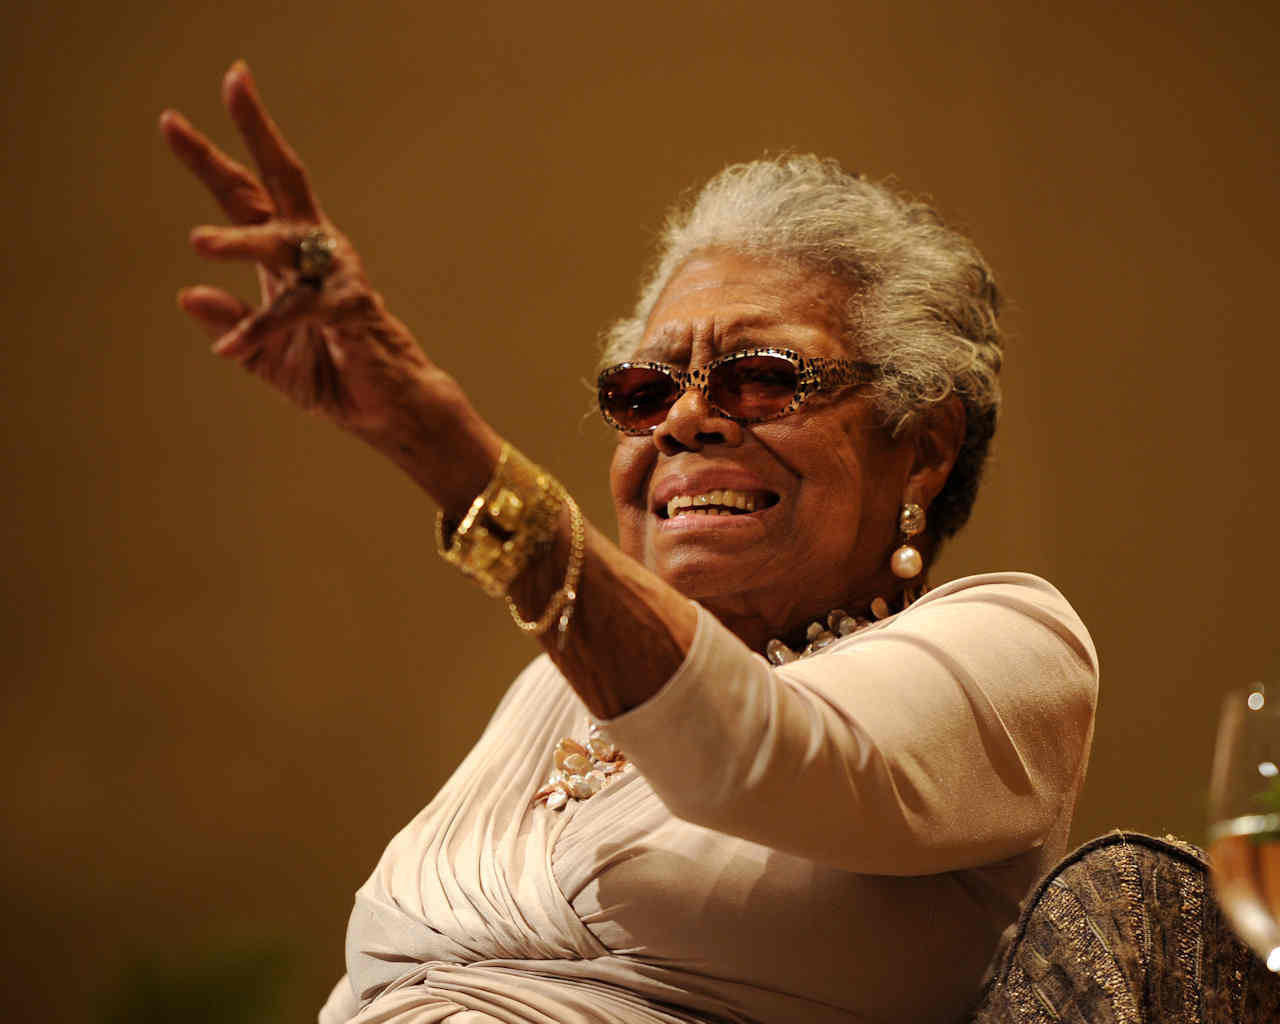 Maya Angelou speaks on race relations at Congregation B'nai Israel and Ebenezer Baptist Church on January 16, 2014 in Boca Raton, Florida. Angelou died on May 28 at the age of 86. <span class=meta>(Photo by Jeff Daly/Invision/AP)</span>